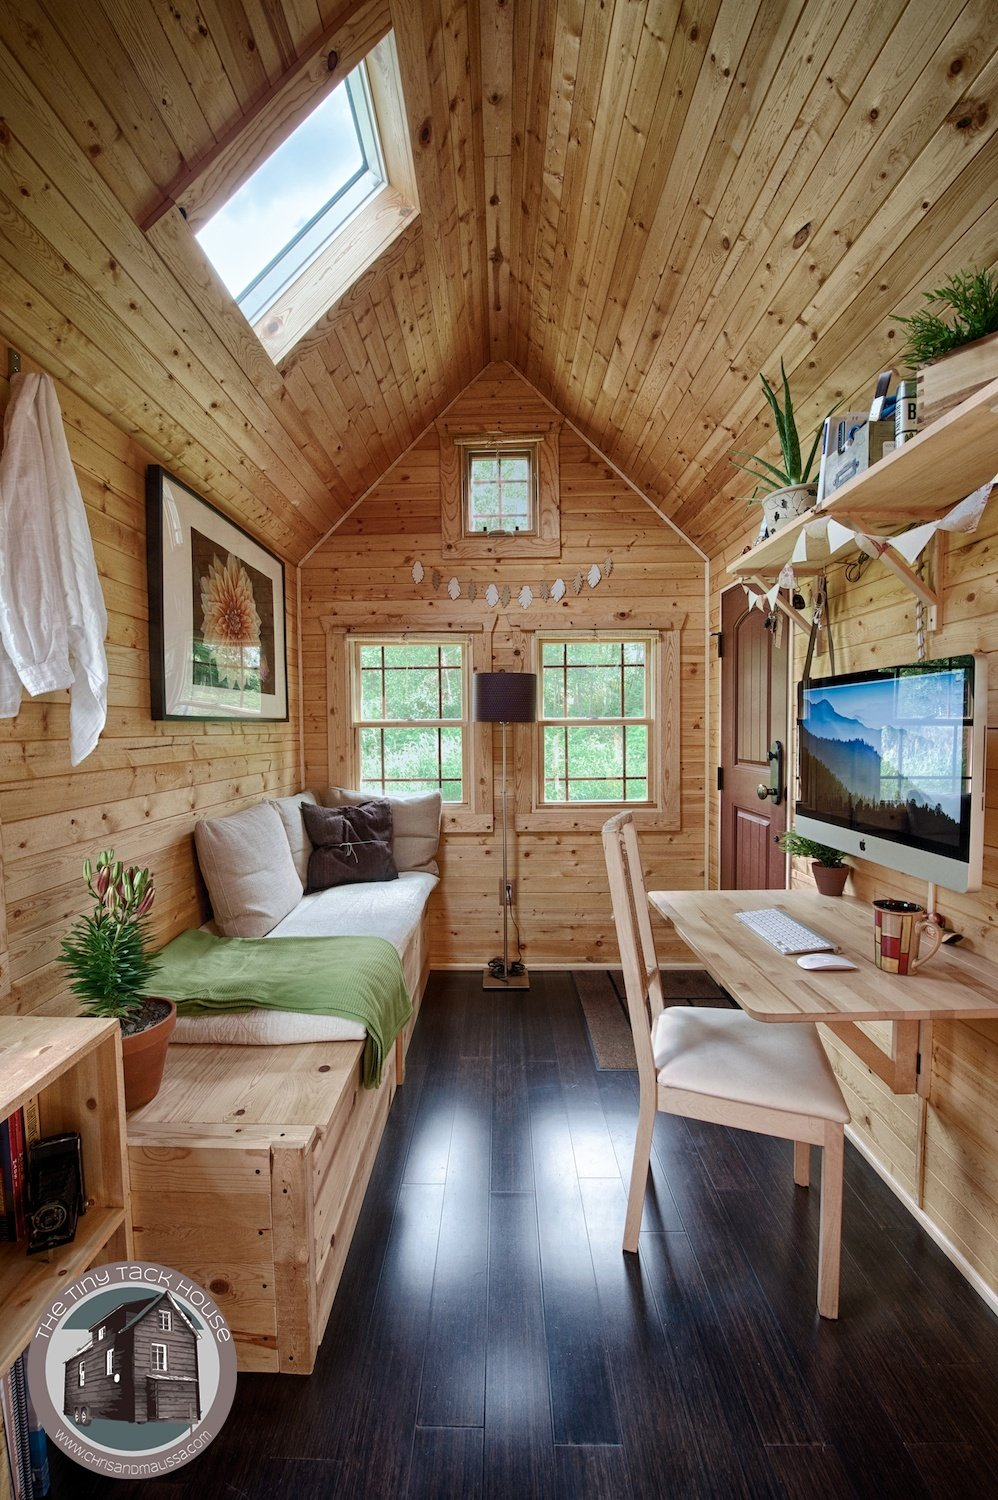 Merveilleux Image Via Tiny Tack House · The Tiny Tack House